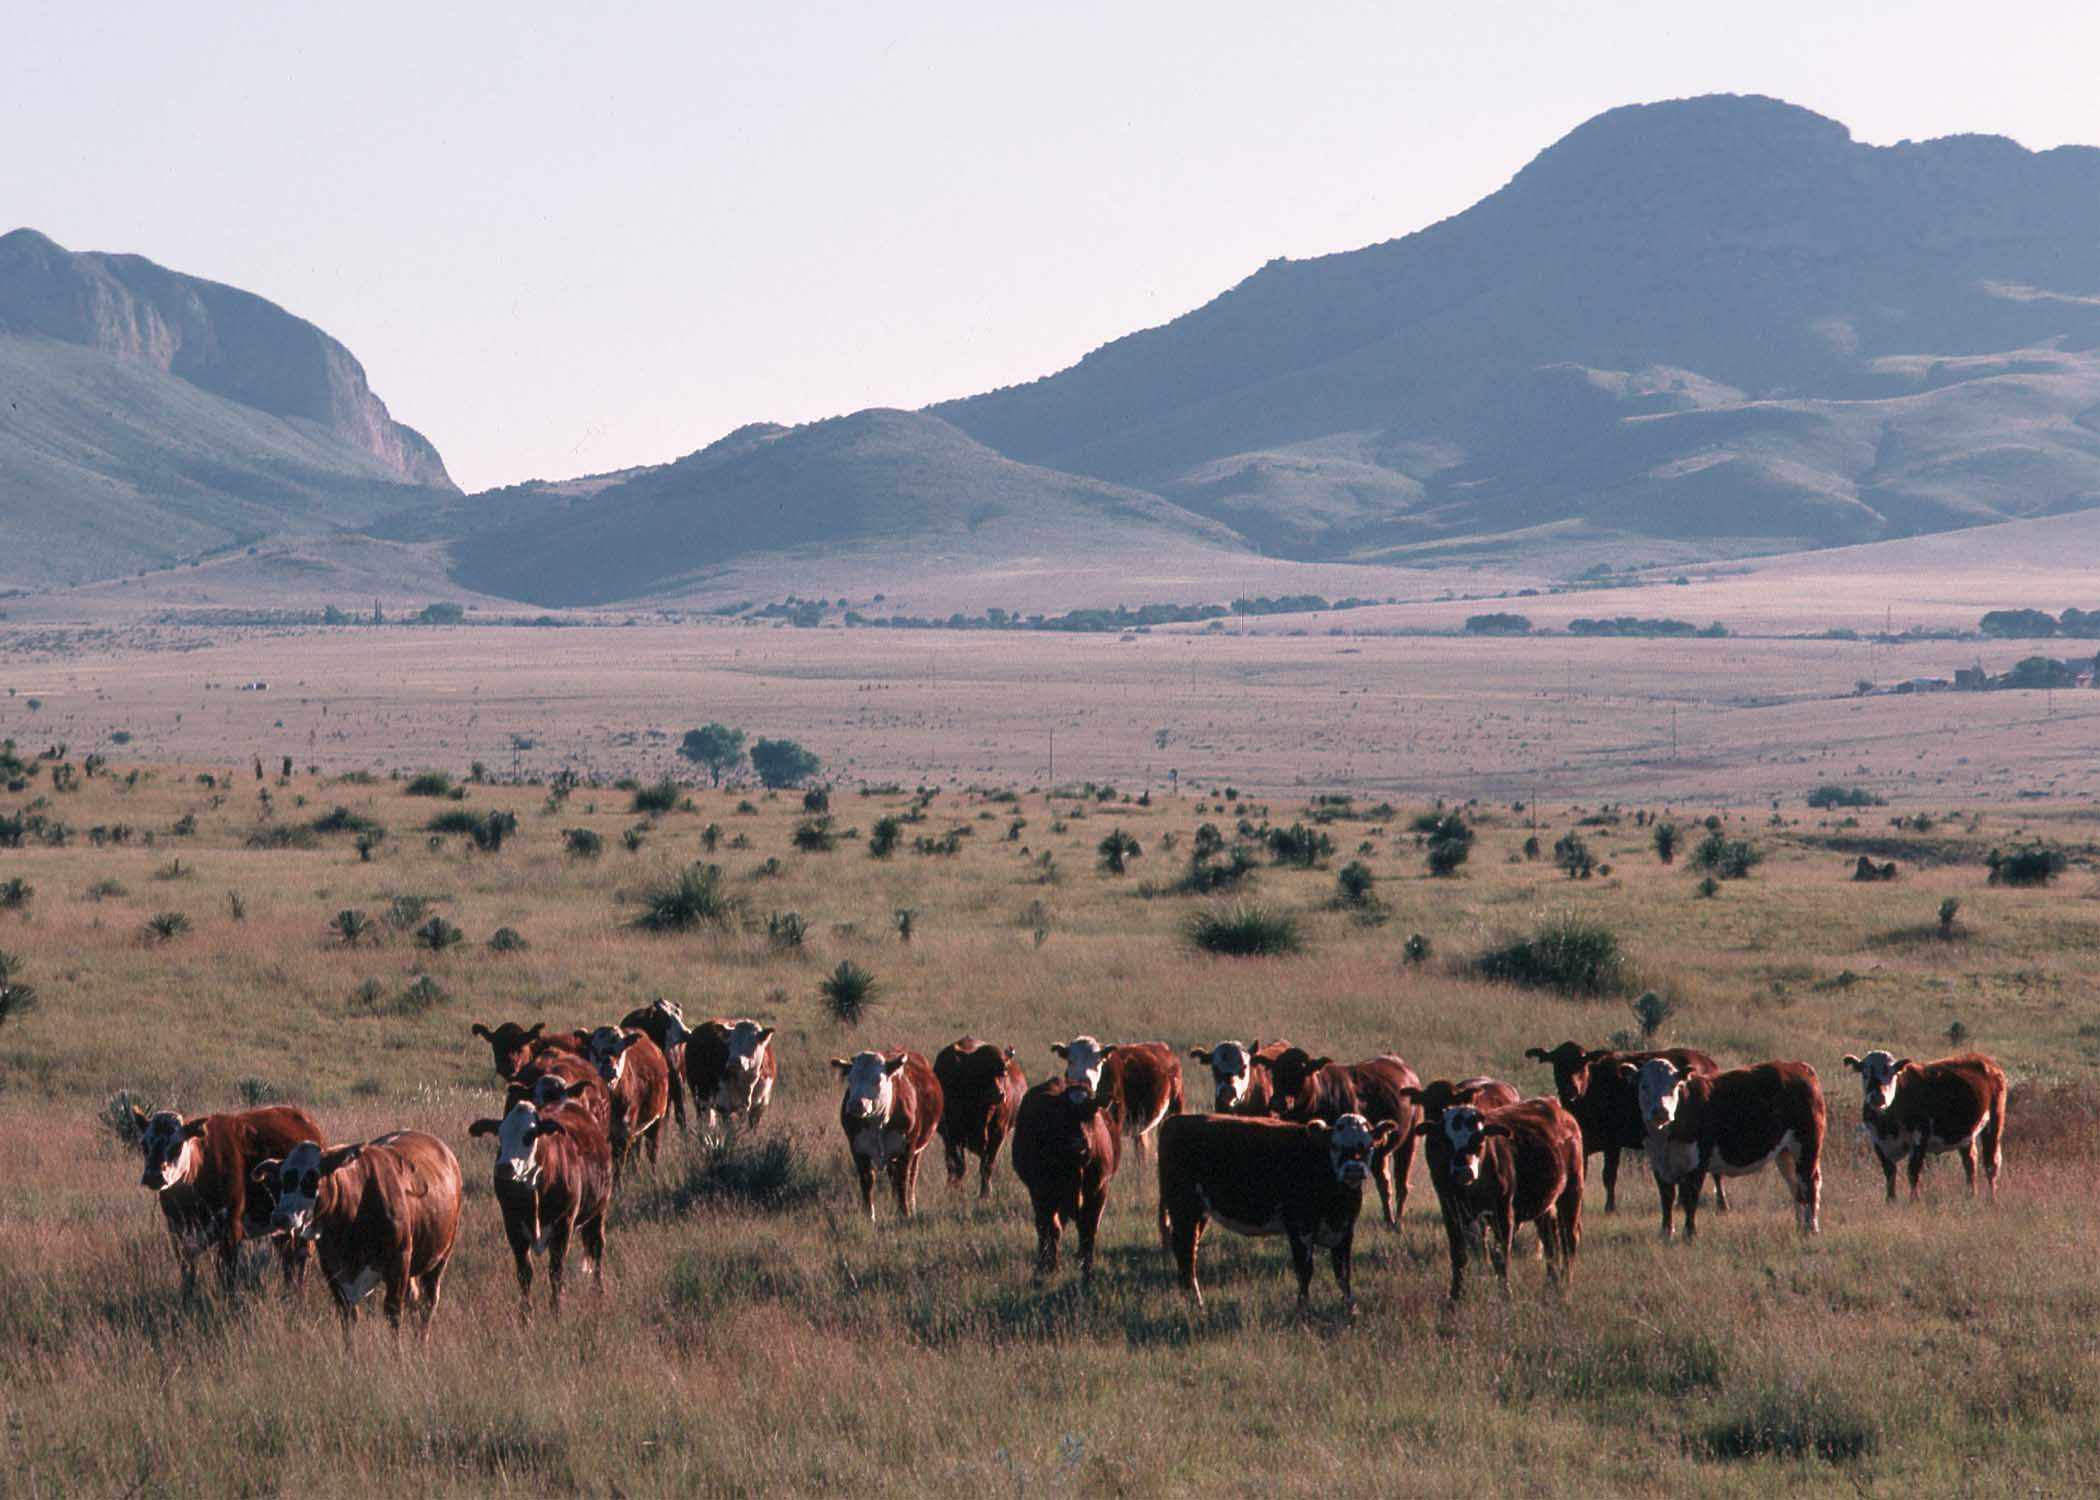 Brown cattle in foreground, all looking towards camera, with mountains in background.